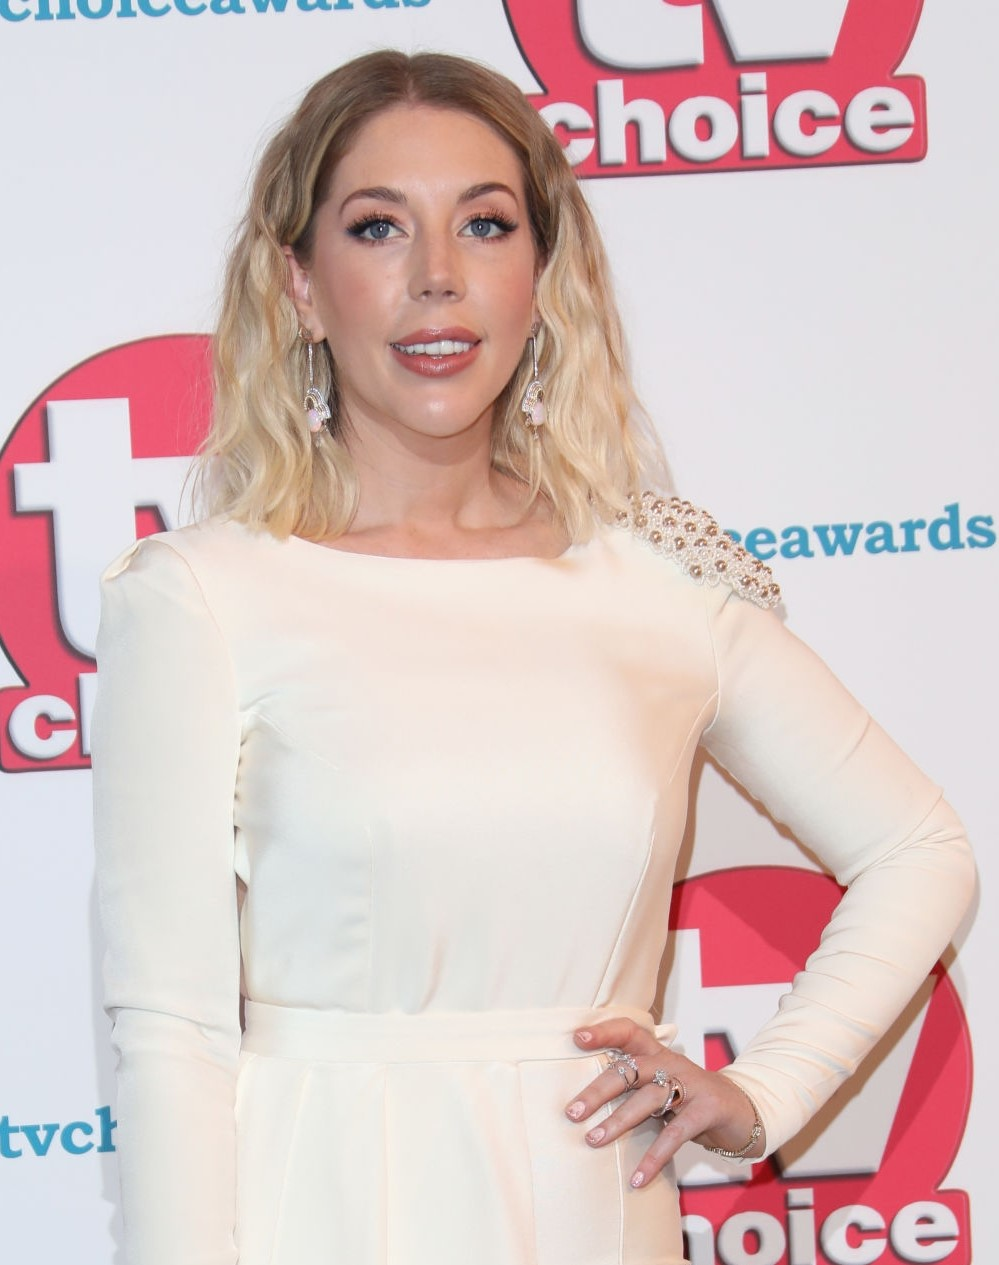 Katherine Ryan robbed by a masked man in her home